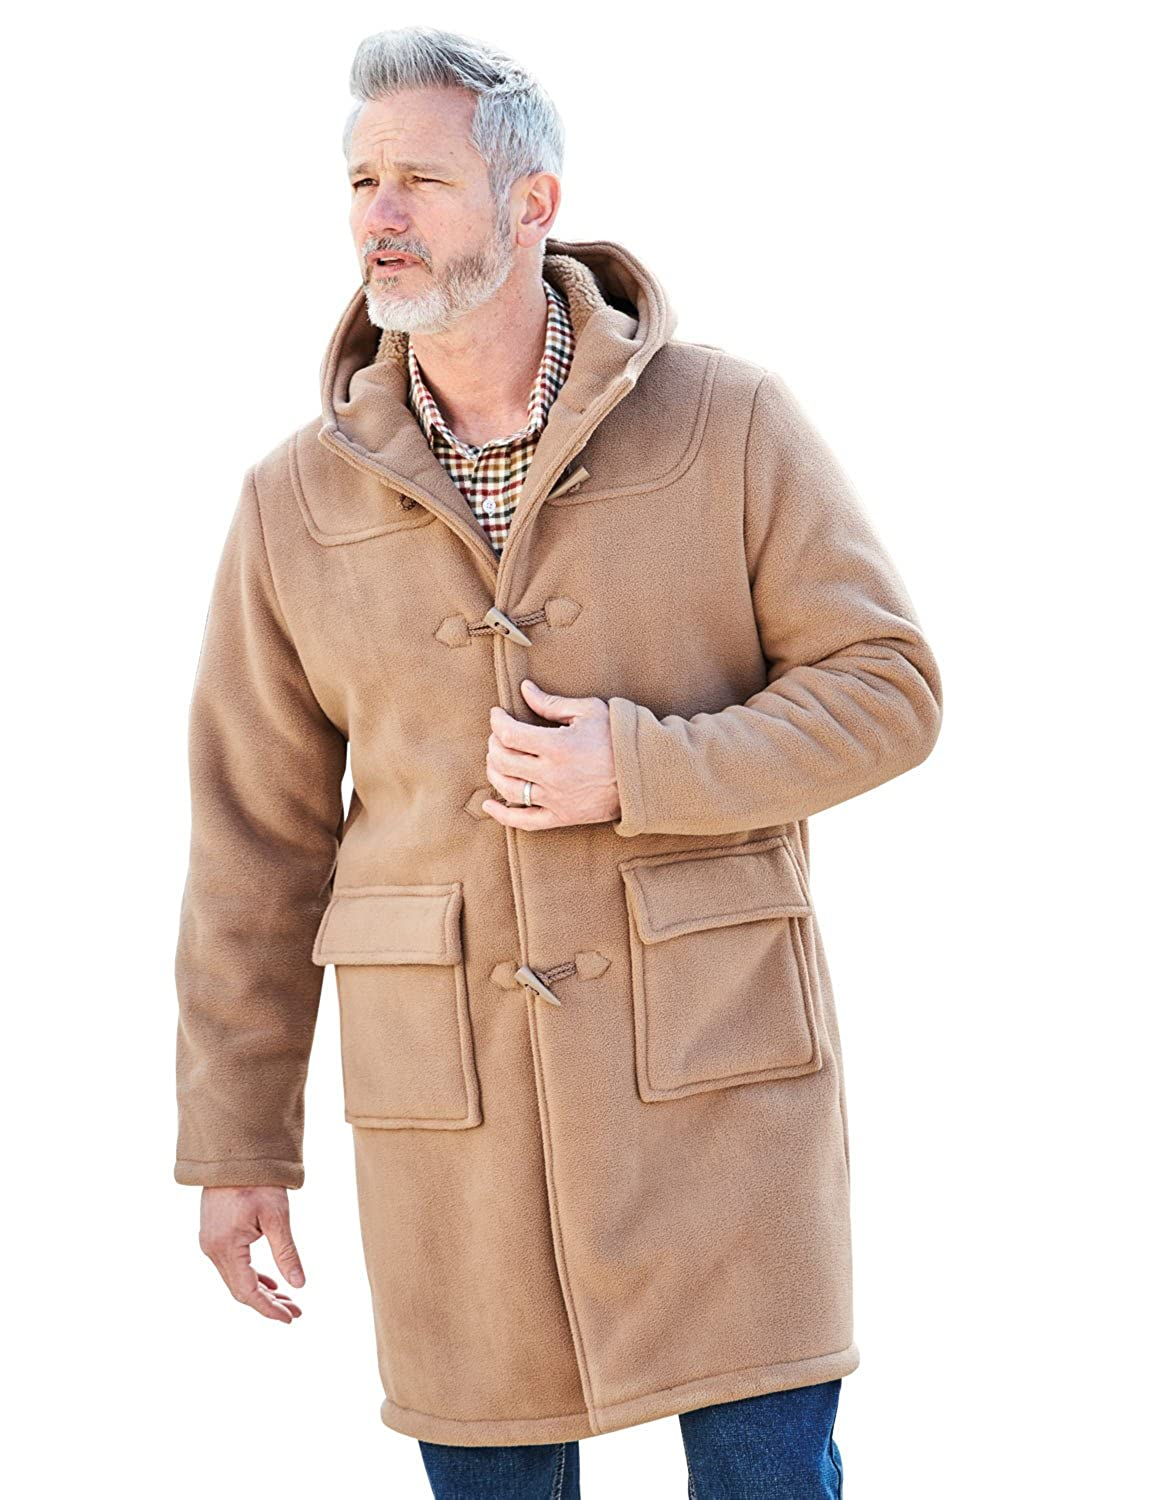 Mens Chums Borg Lined Duffle Coat Jacket: Amazon.co.uk: Clothing